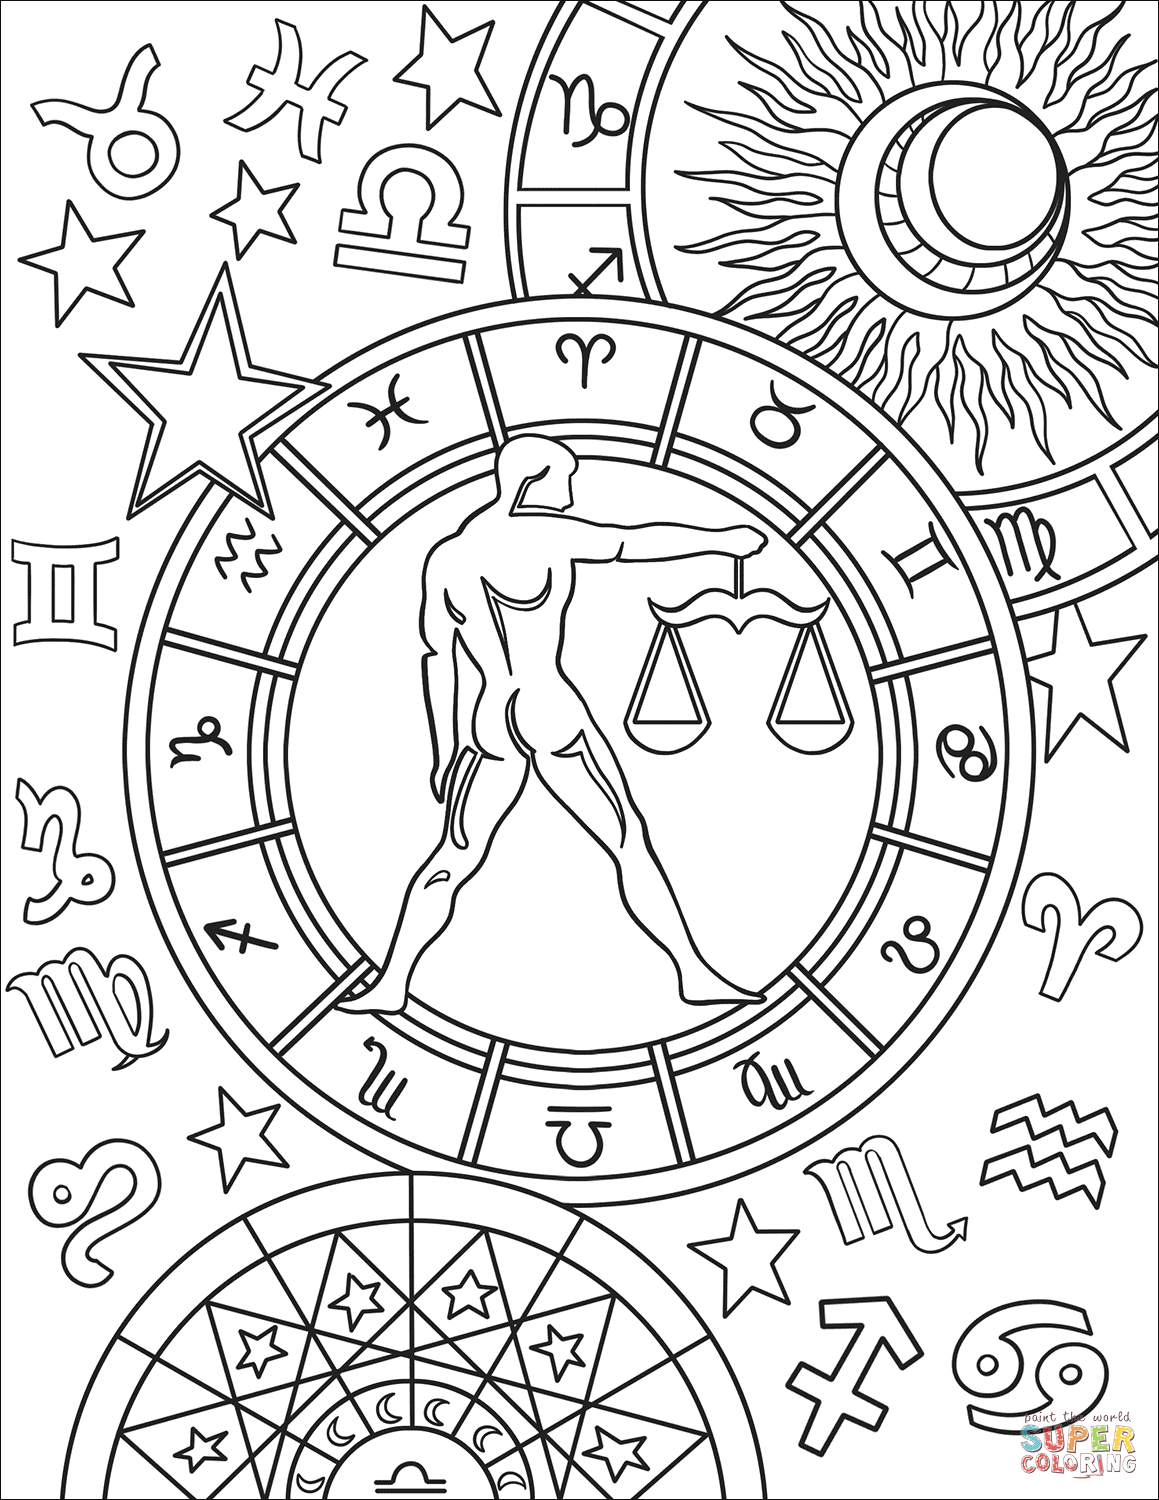 Libra Zodiac Sign Coloring Page Free Printable Coloring Pages